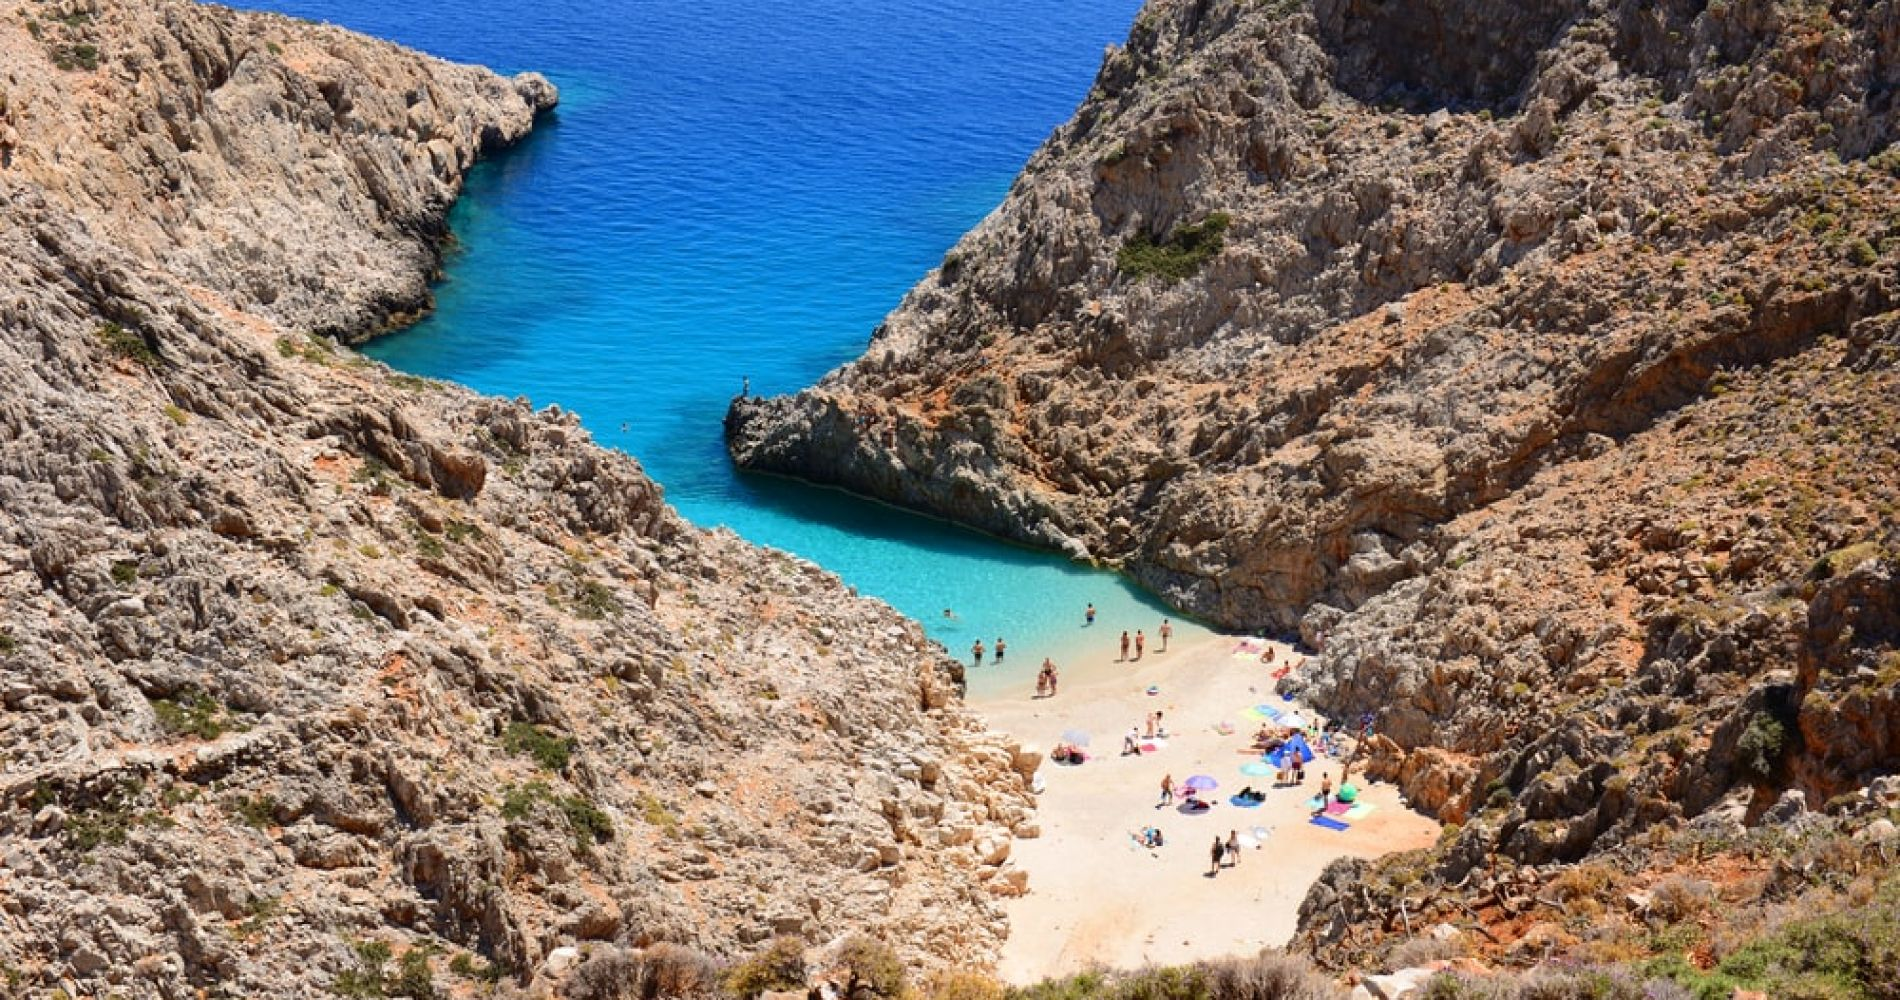 Swim in Seitan Limania on the island of Crete